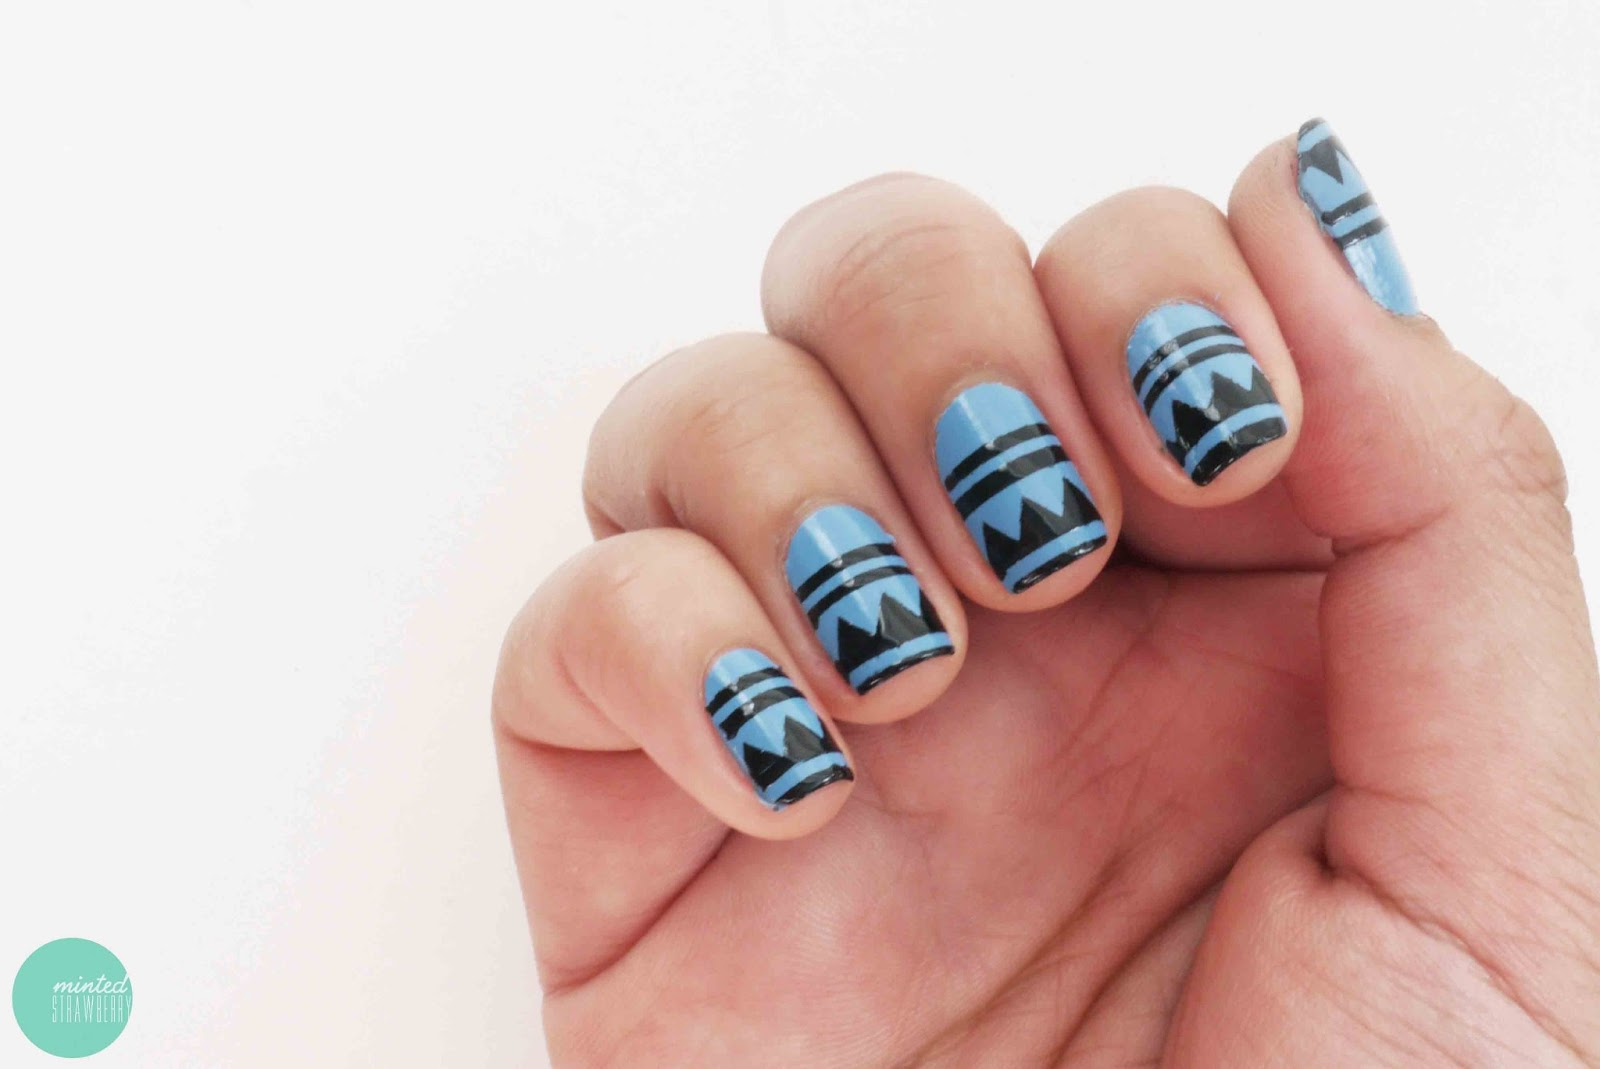 Nail Polish: Aztec Nail Art Stencils - Minted Strawberry